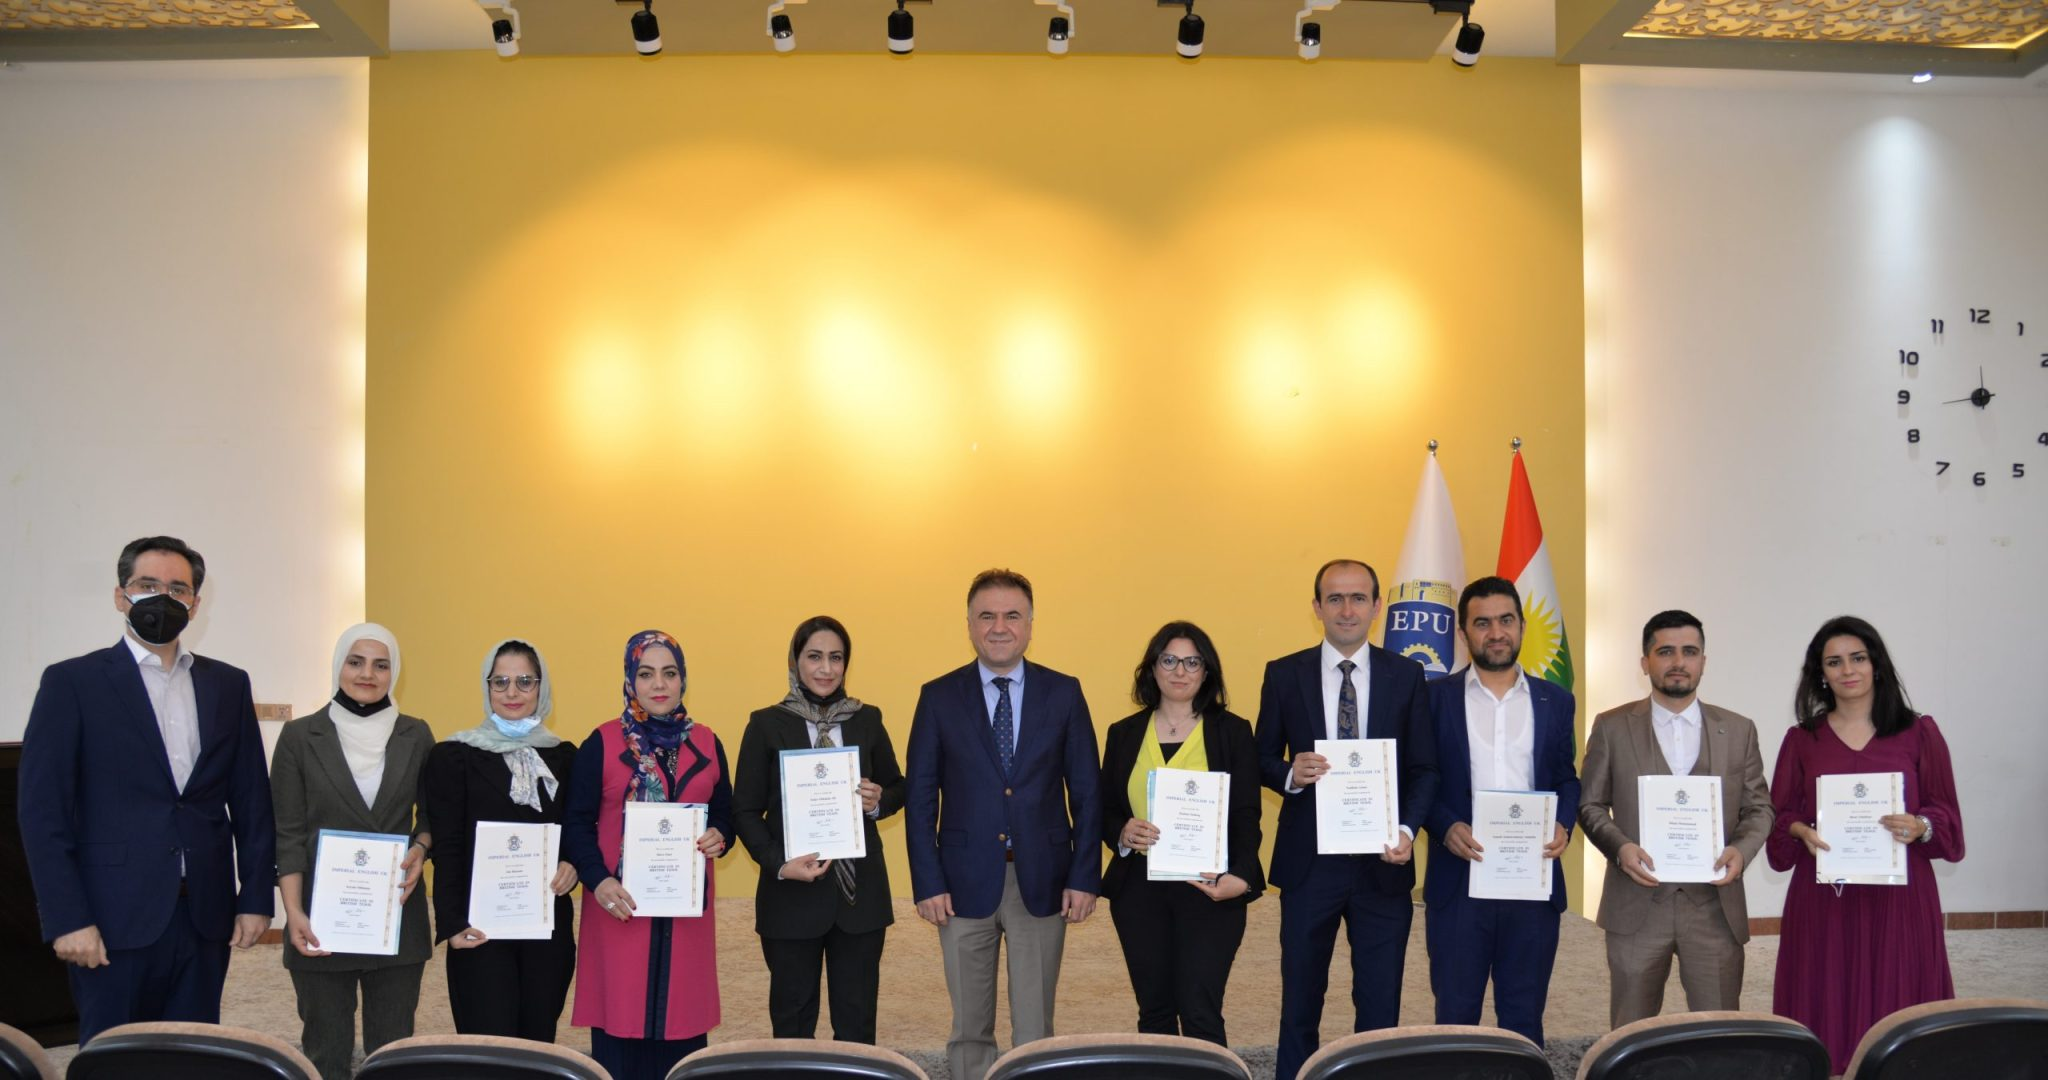 The Rector Of The EPU Offered Eleven English Lecturers The Certificate Of Participation In The TESOL Training Course